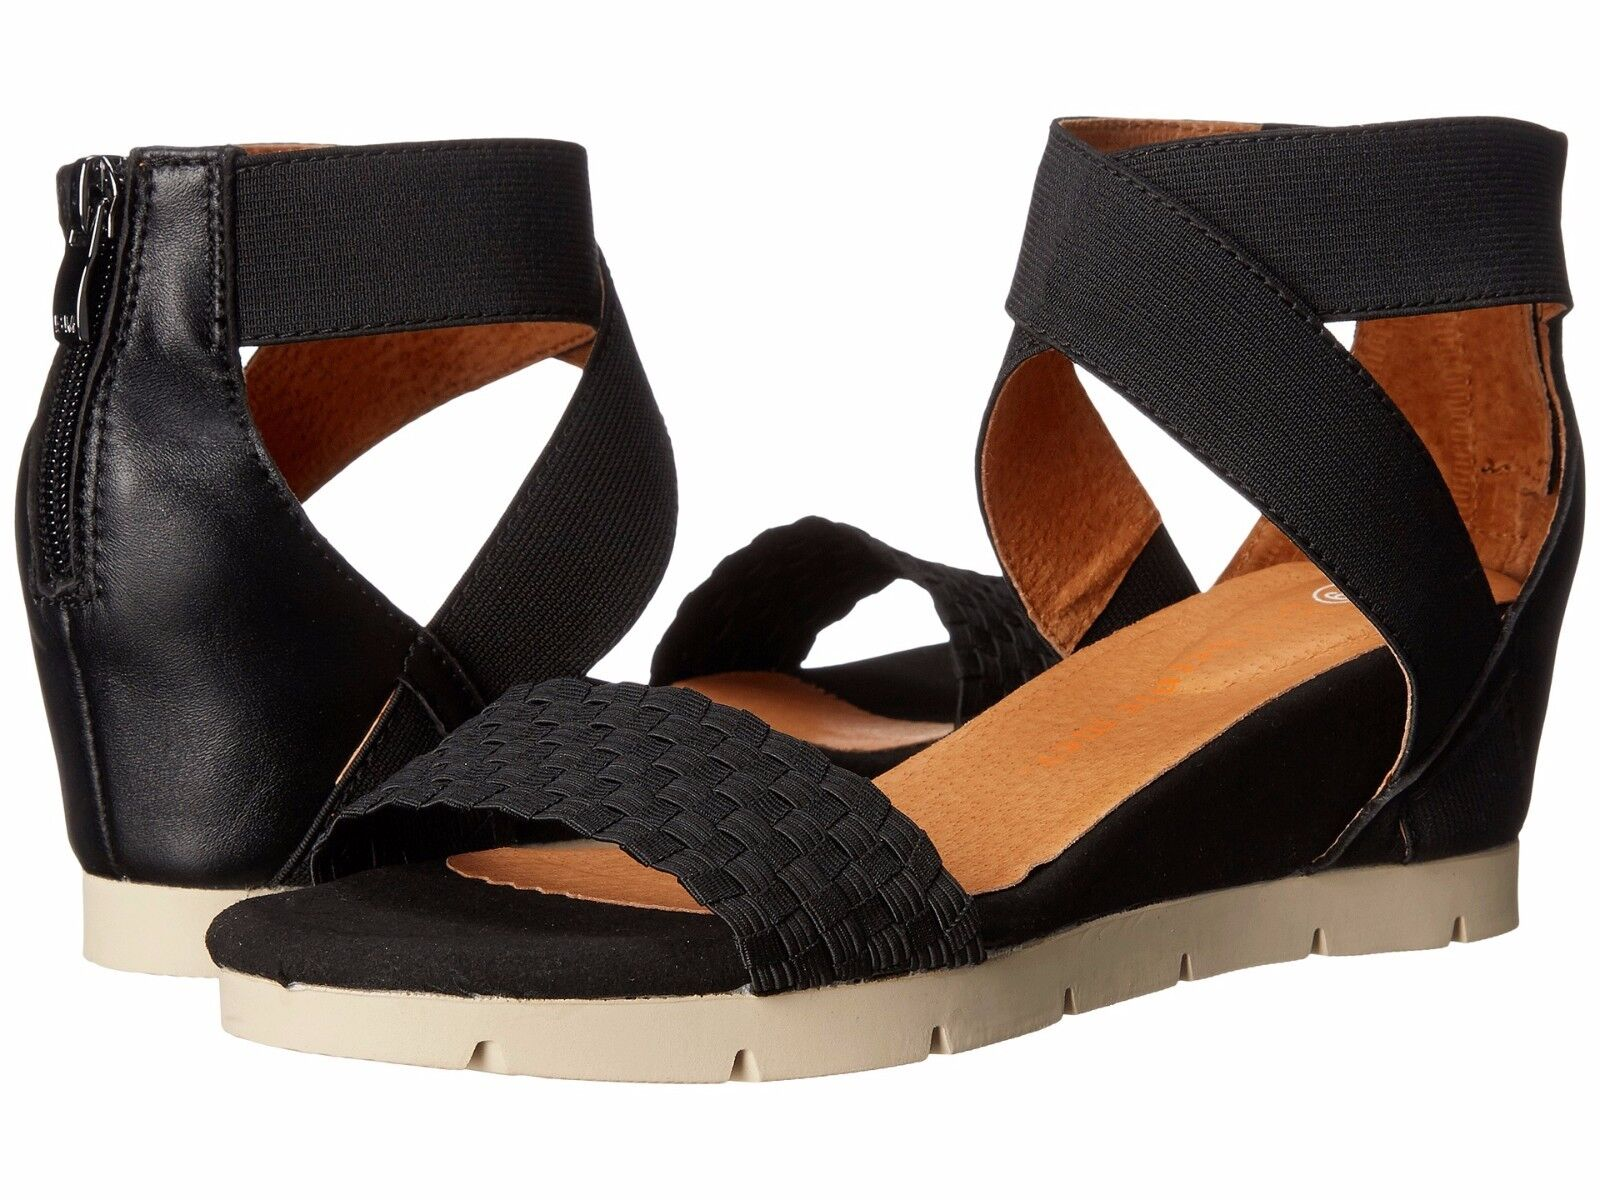 Women's shoes Bernie Mev August Crossed Ankle Ankle Ankle Strap Sandal Black New 21fc8b